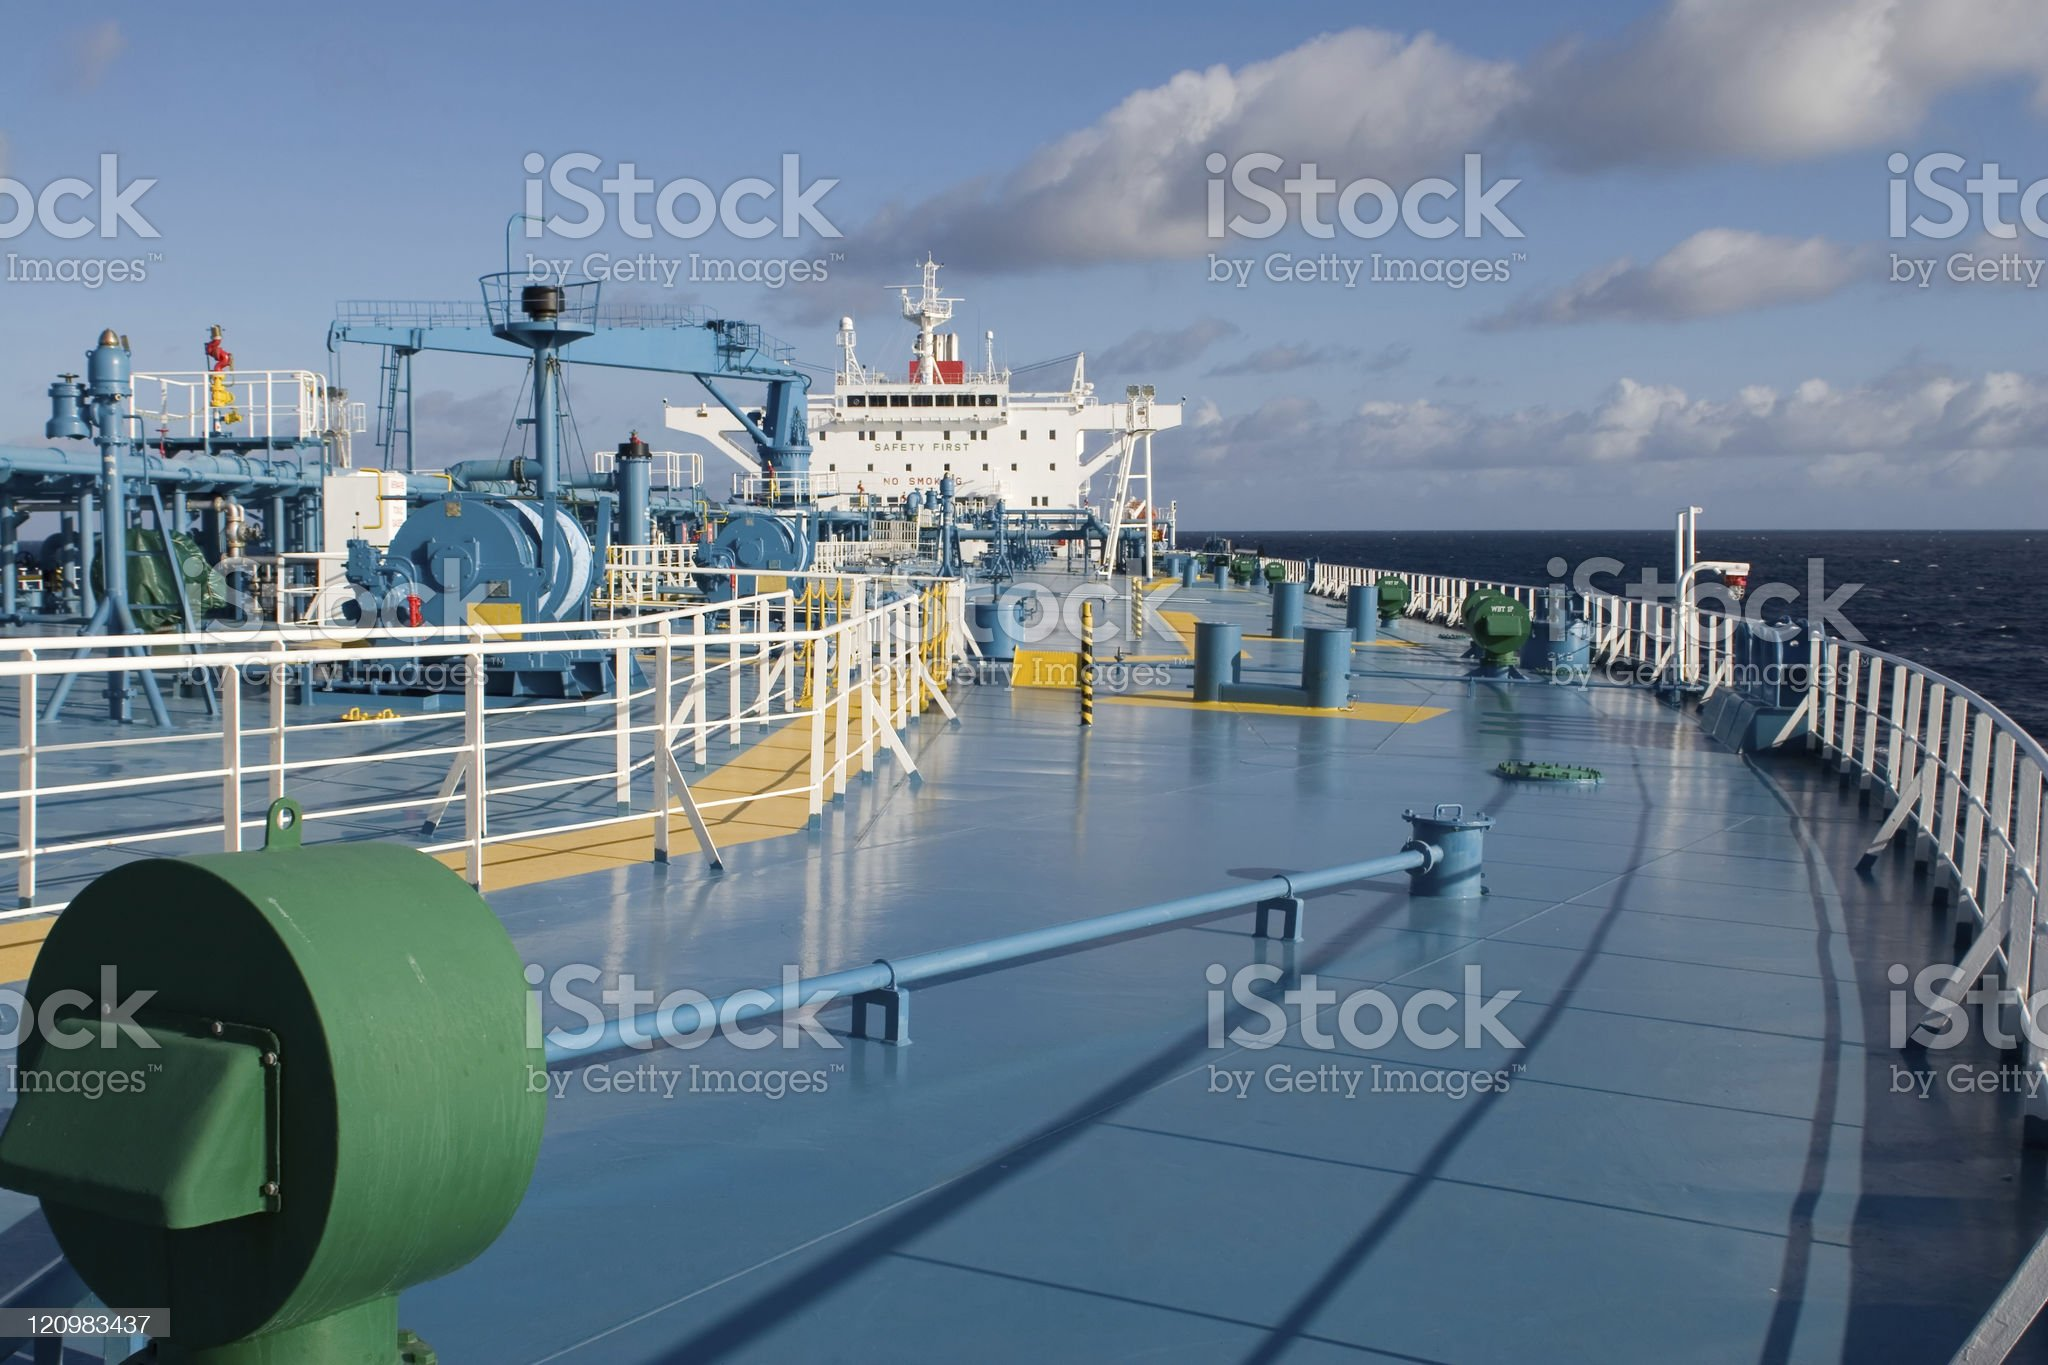 Tanker royalty-free stock photo